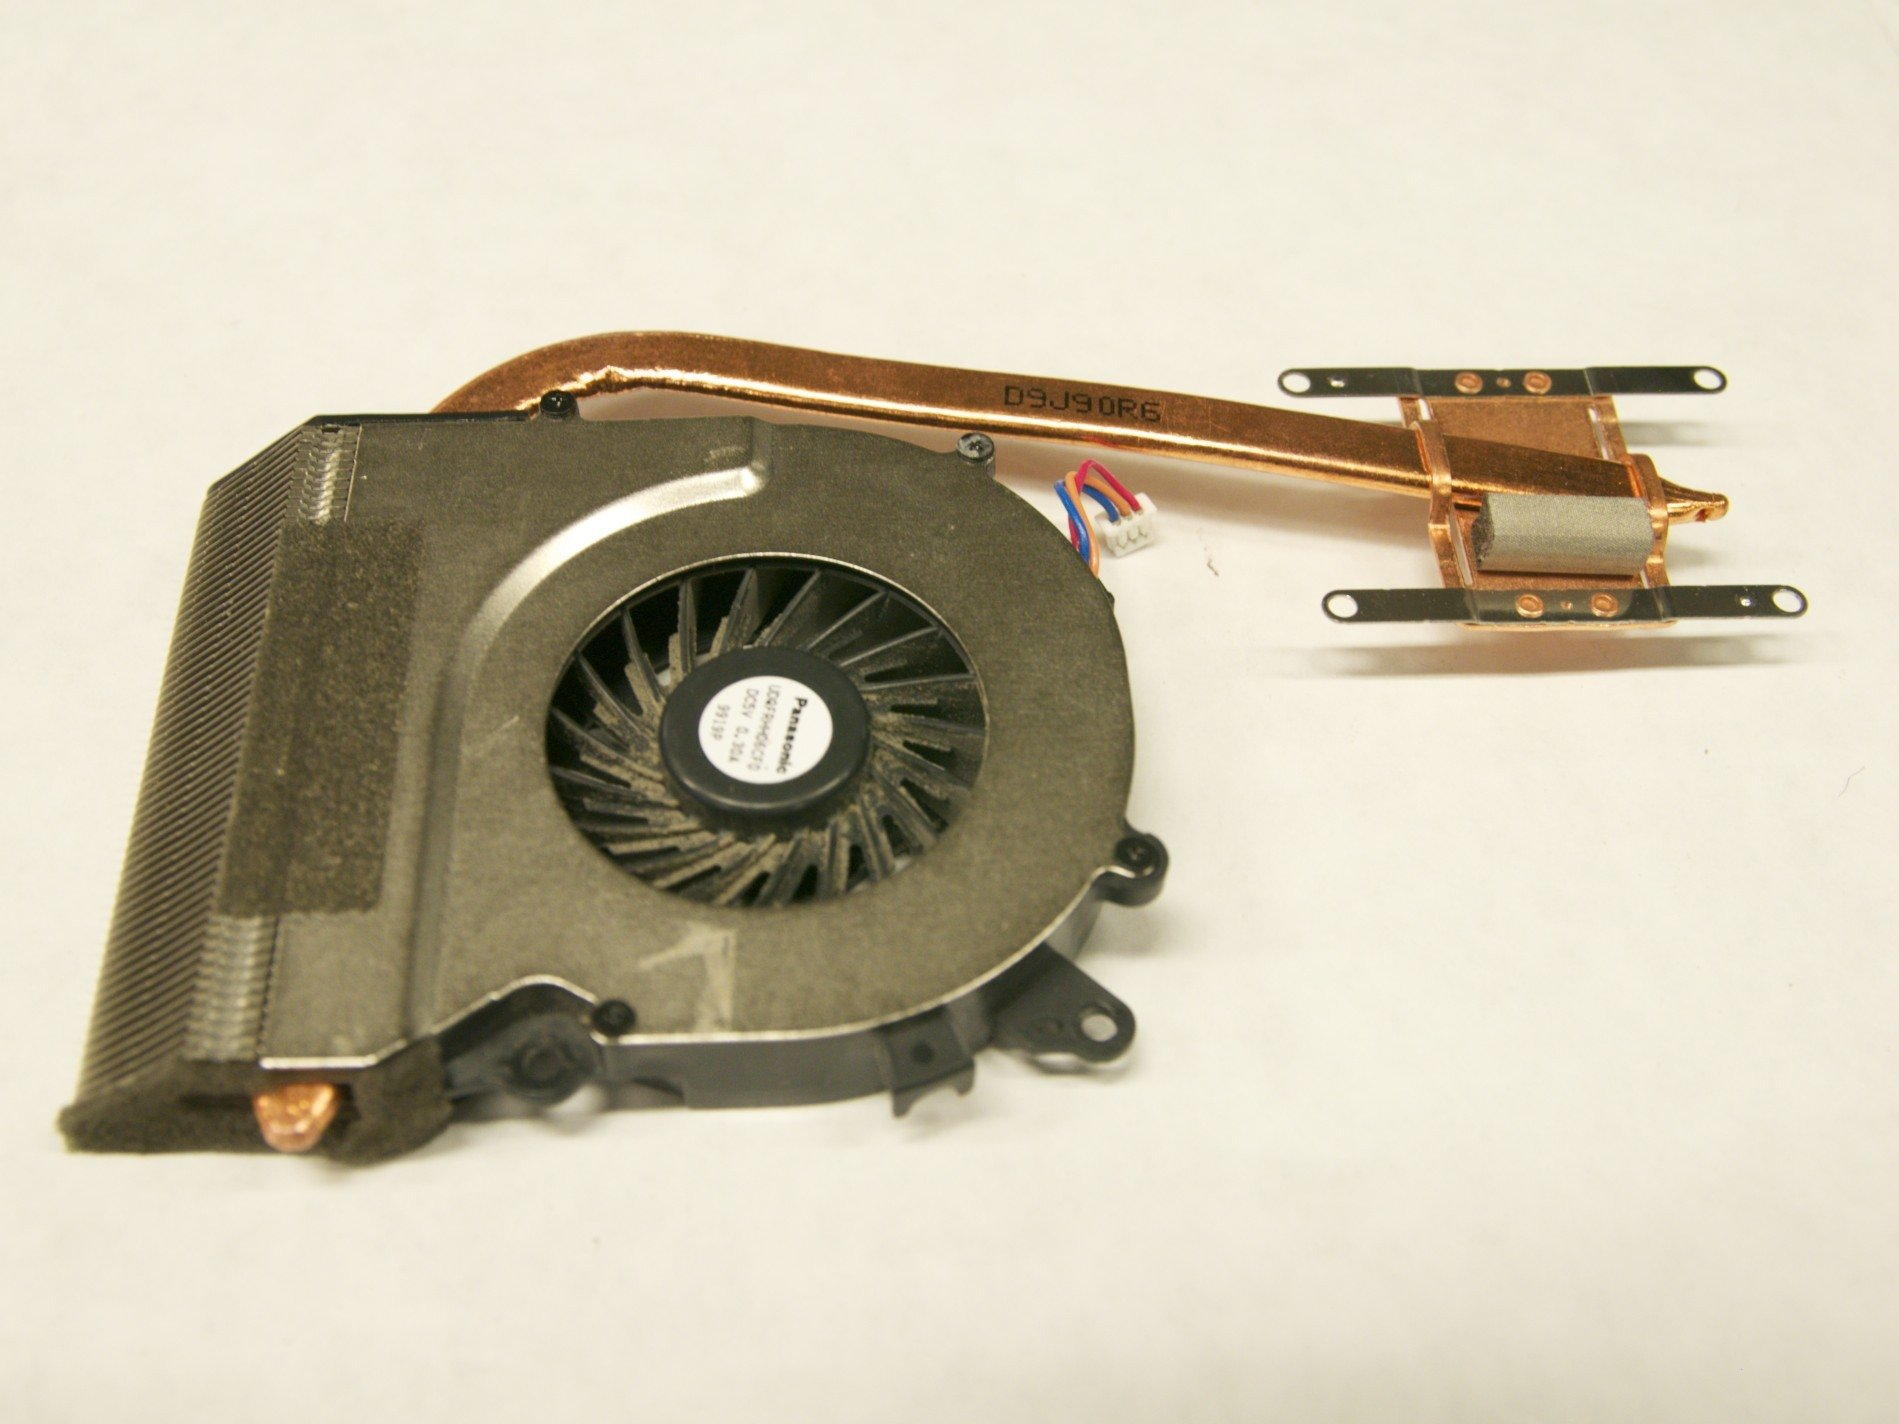 Sony Vaio Pcg-7184l  Vgn-nw240f  Fan Replacement